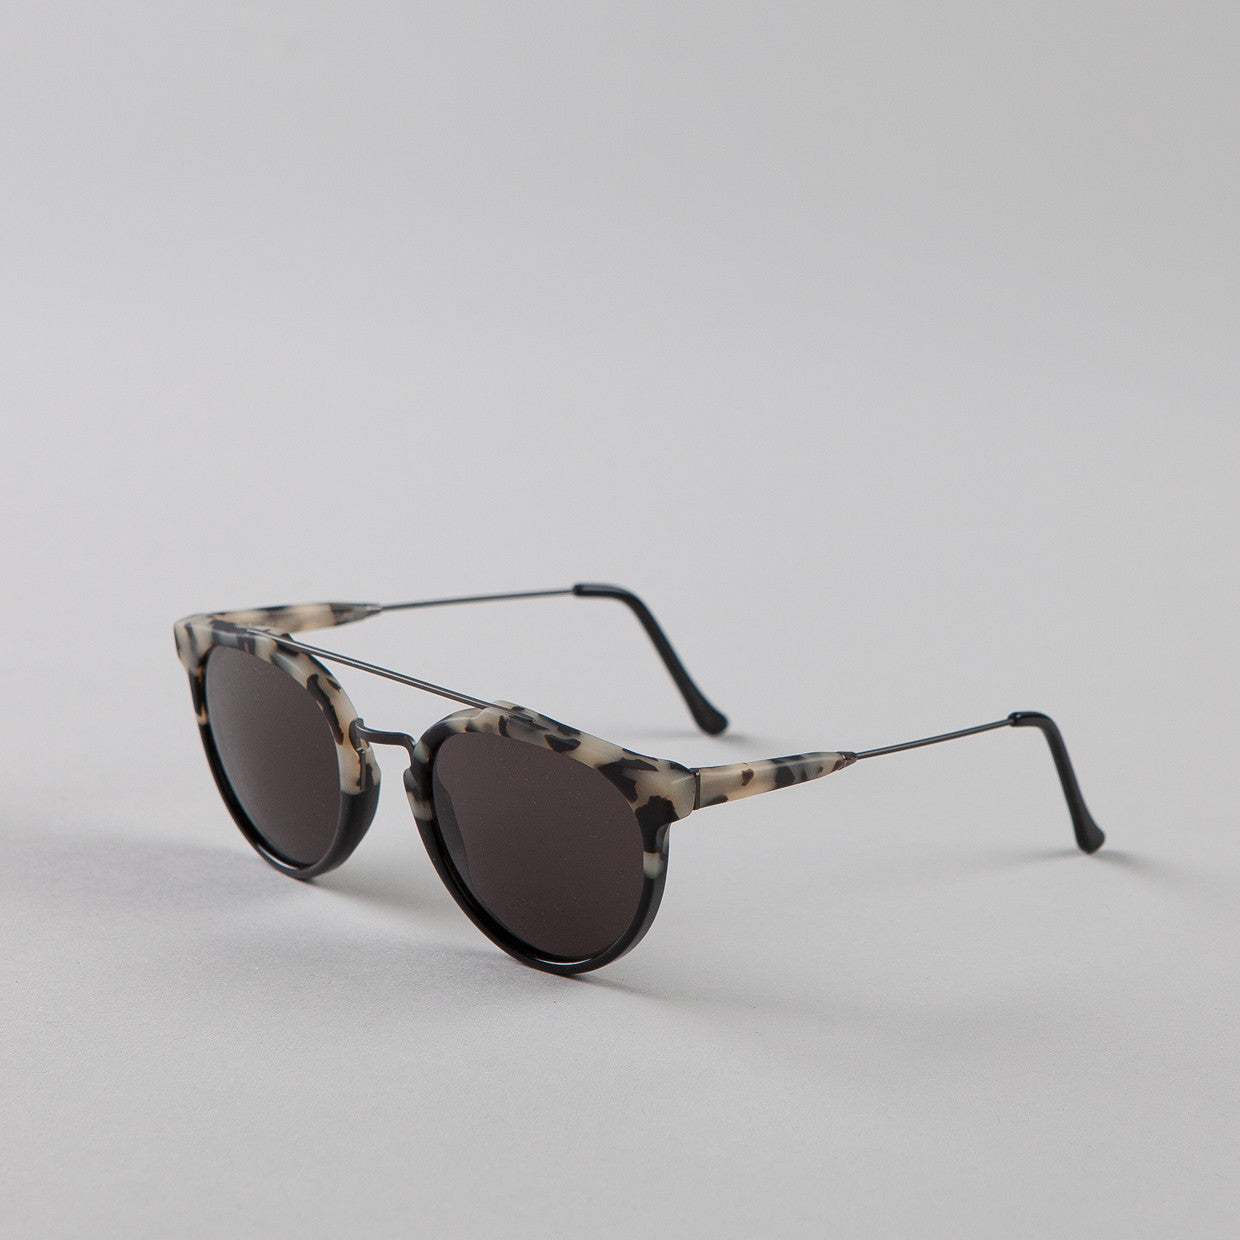 Super Giaguaro Sunglasses Matte Puma & Black